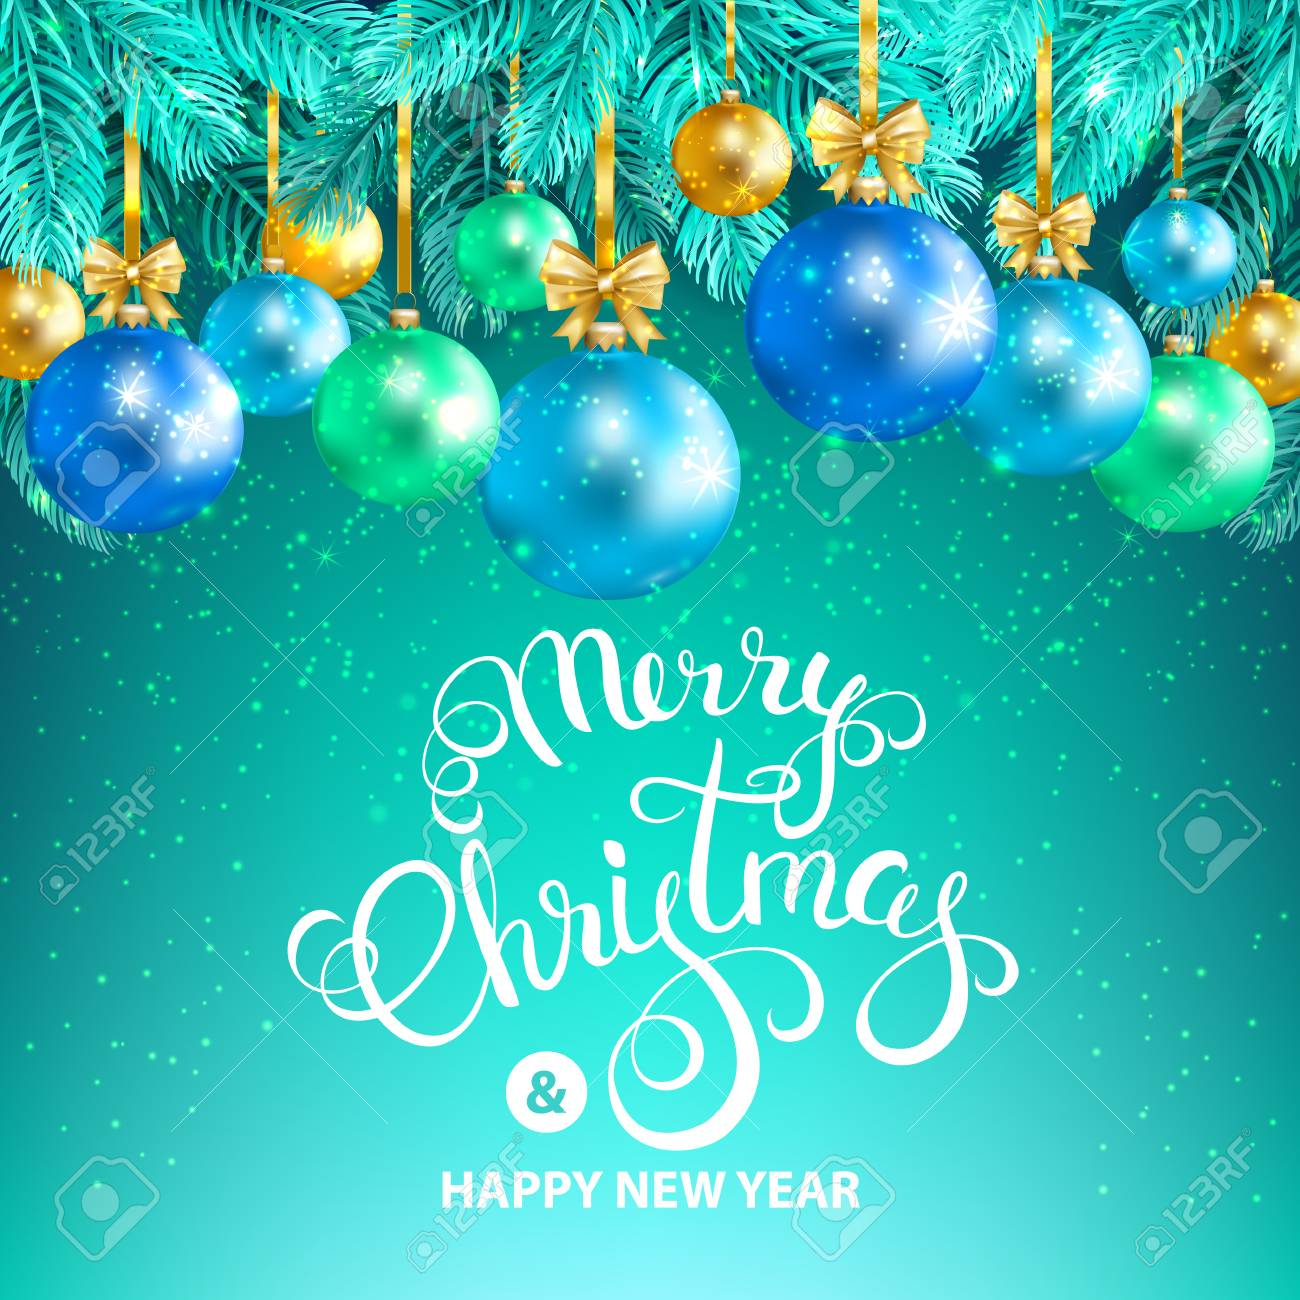 Merry Christmas And Happy New Year Card With Gold Blue Green